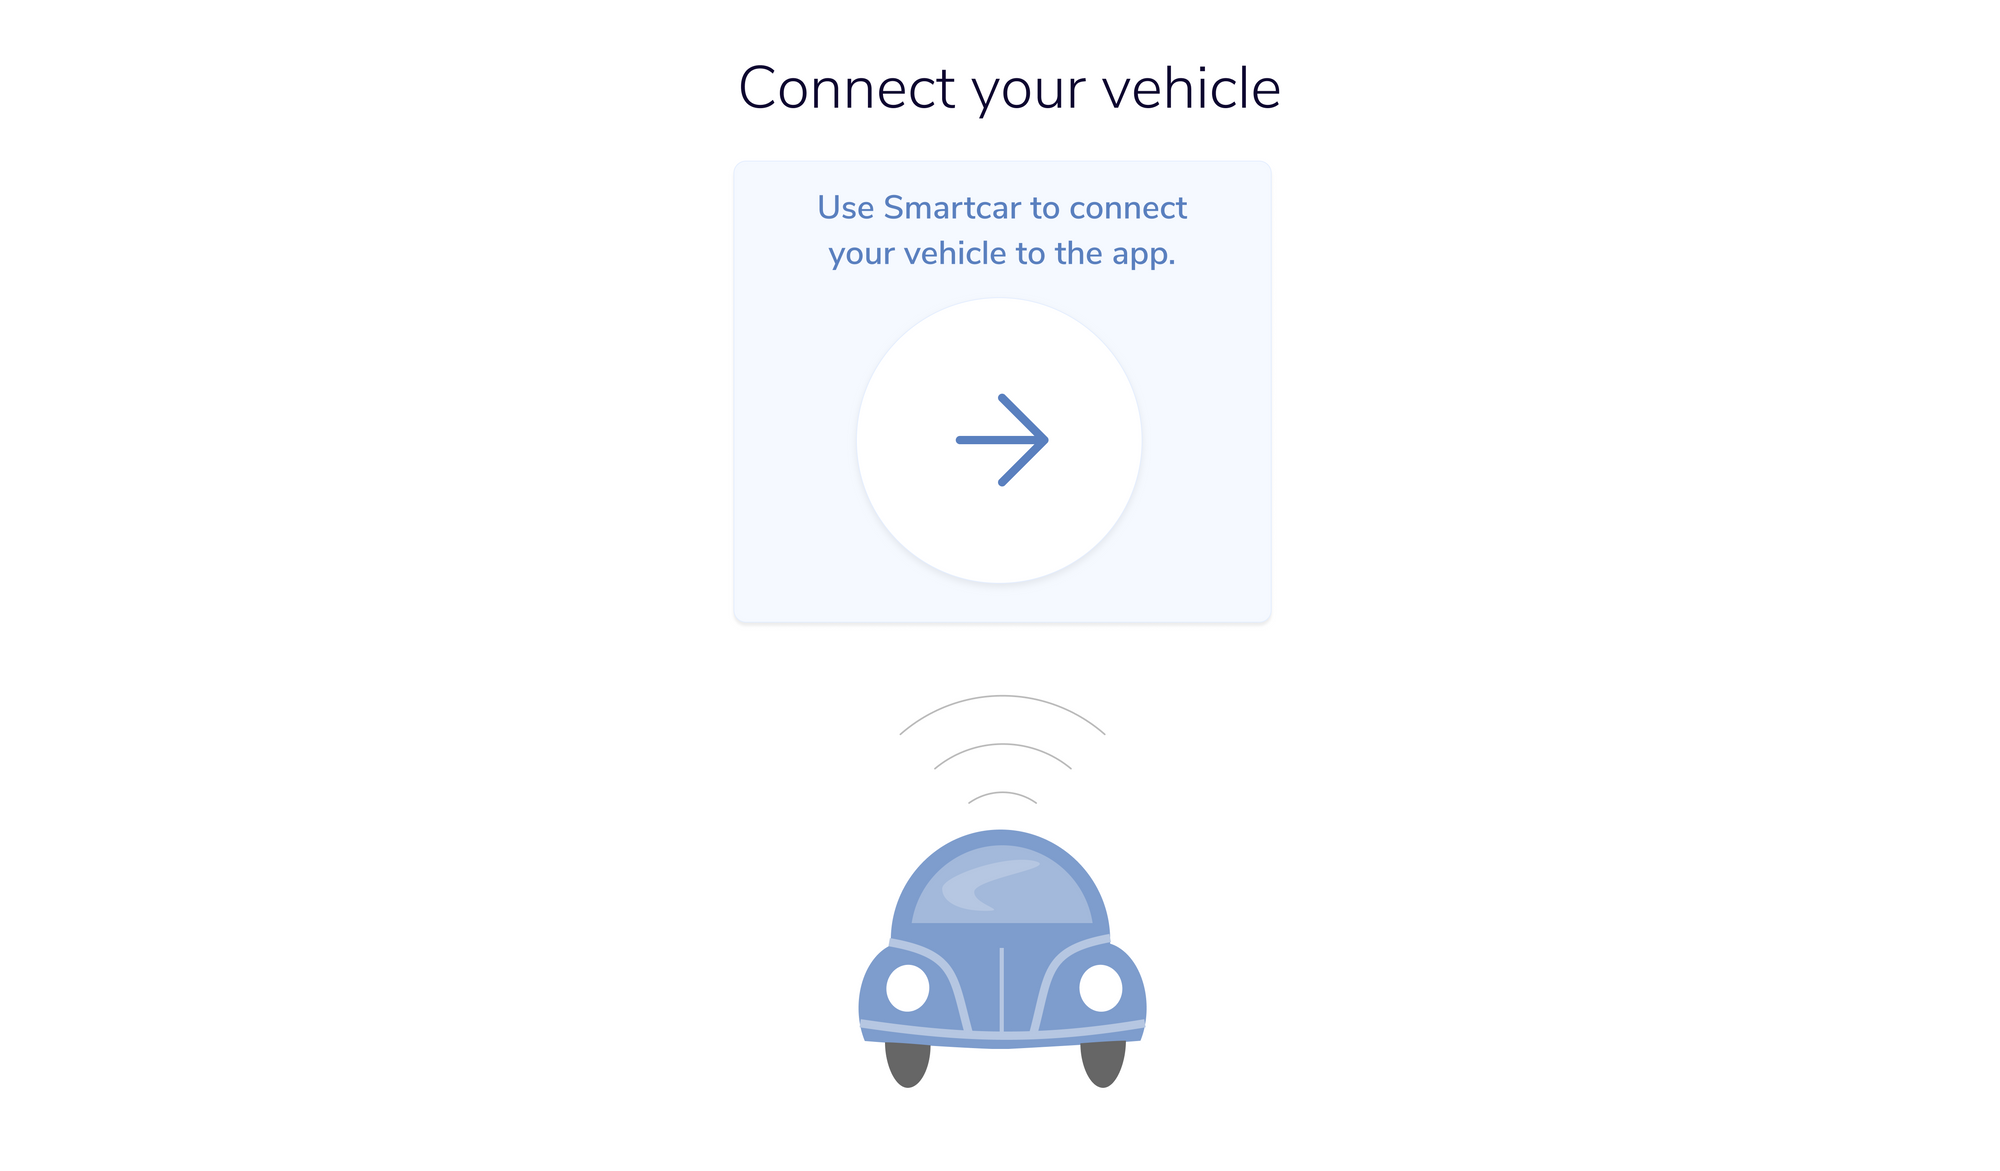 Announcing live and test modes in the Smartcar authorization flow